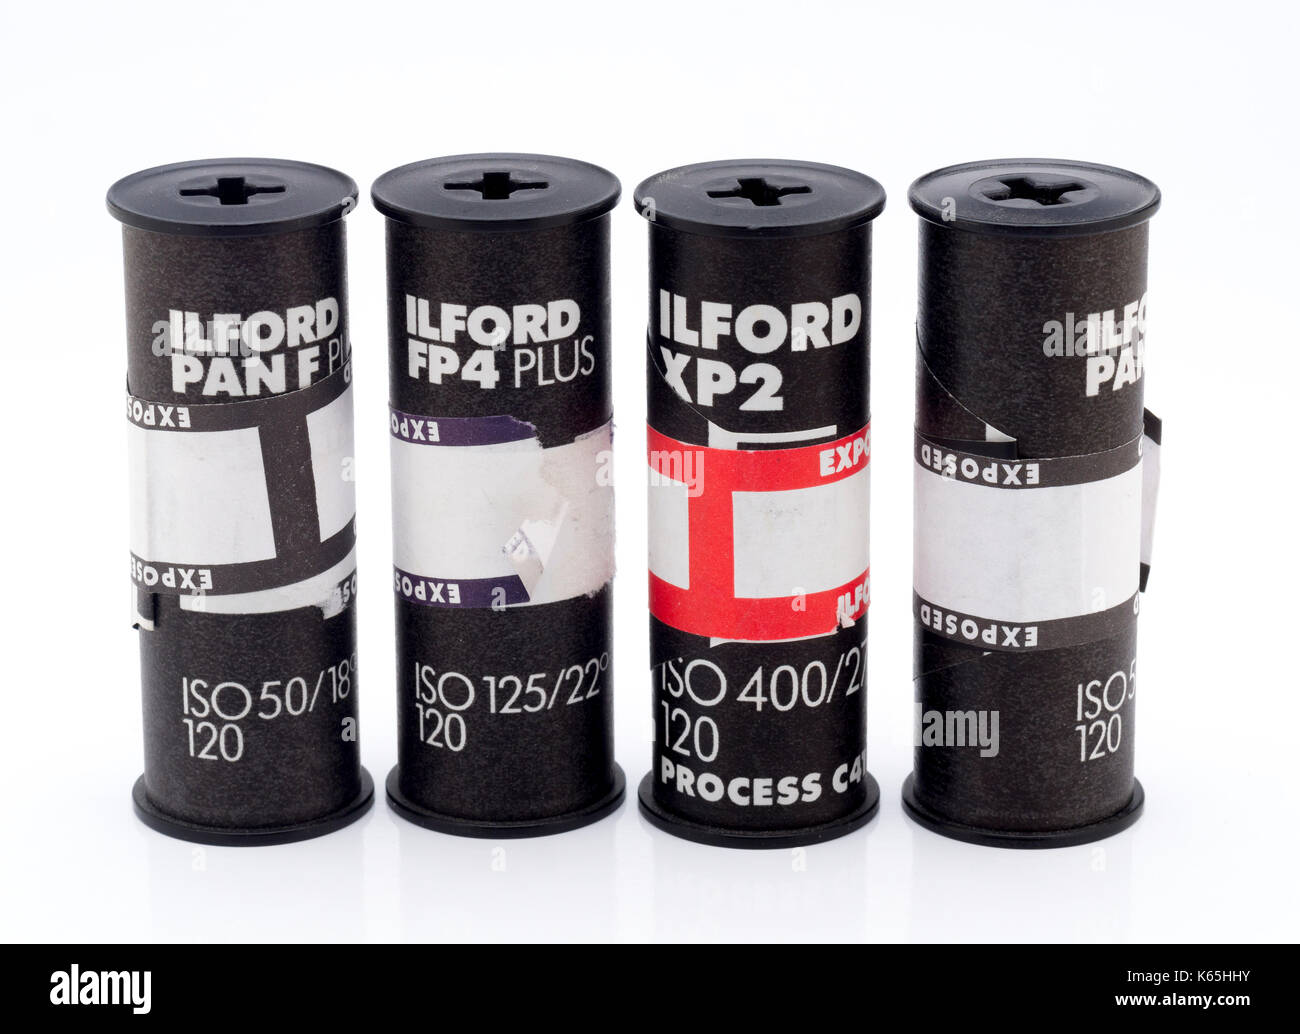 Rolls of Ilford 120 Medium Format Black and White Film, Ilford Photo is a UK photographic company founded in 1879. - Stock Image